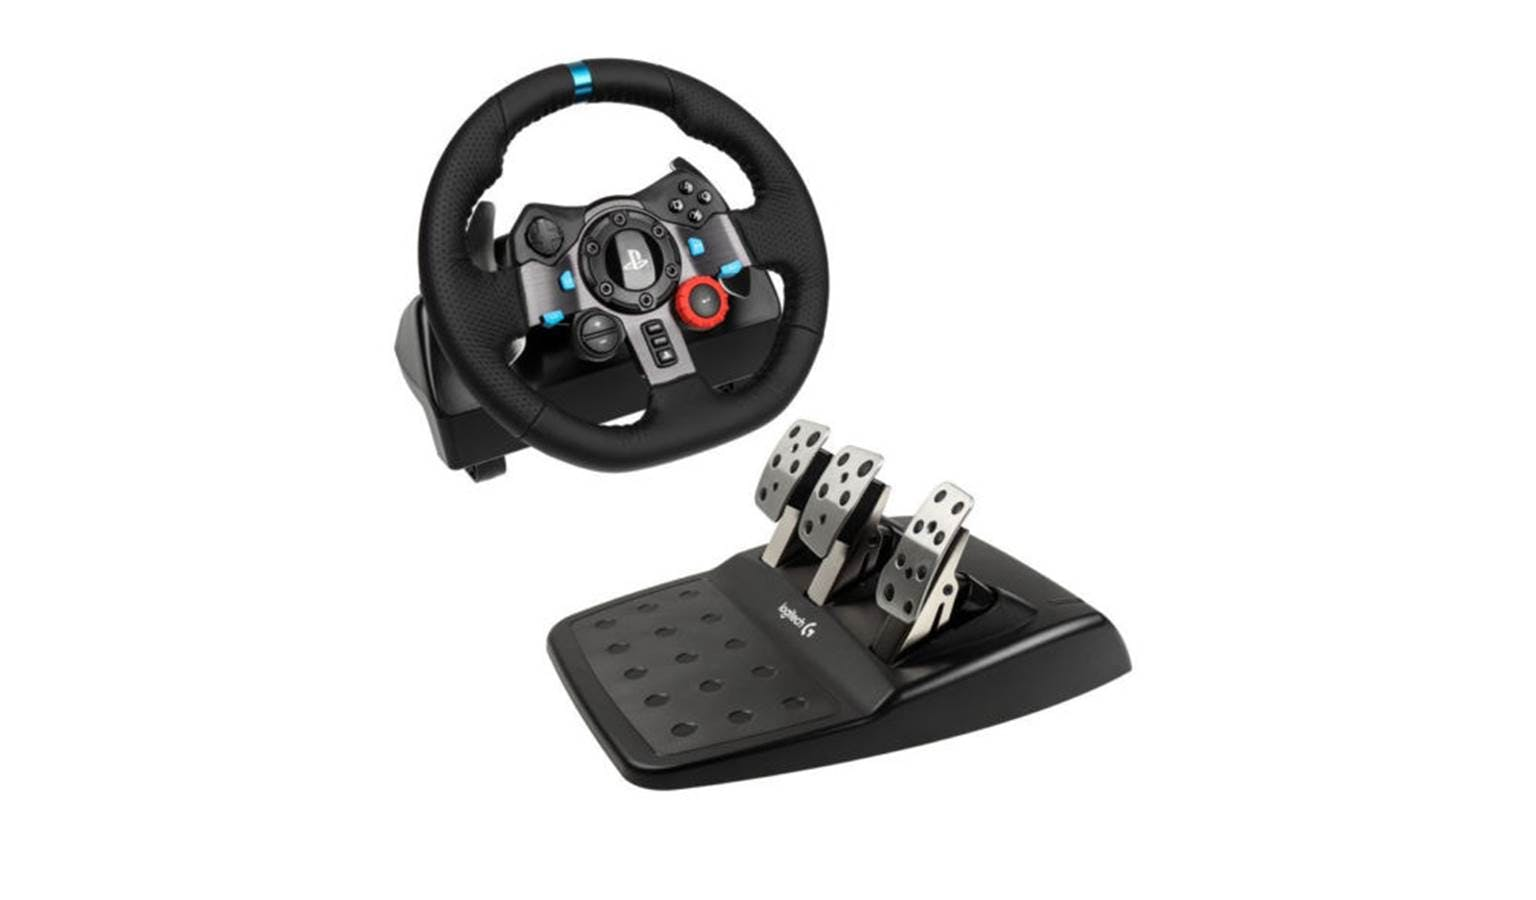 7765be5cf76 Logitech G29 Dual-motor Feedback Driving Force Racing Wheel with Responsive  Pedals for PlayStation 4 and PlayStation 3 | Harvey Norman Malaysia